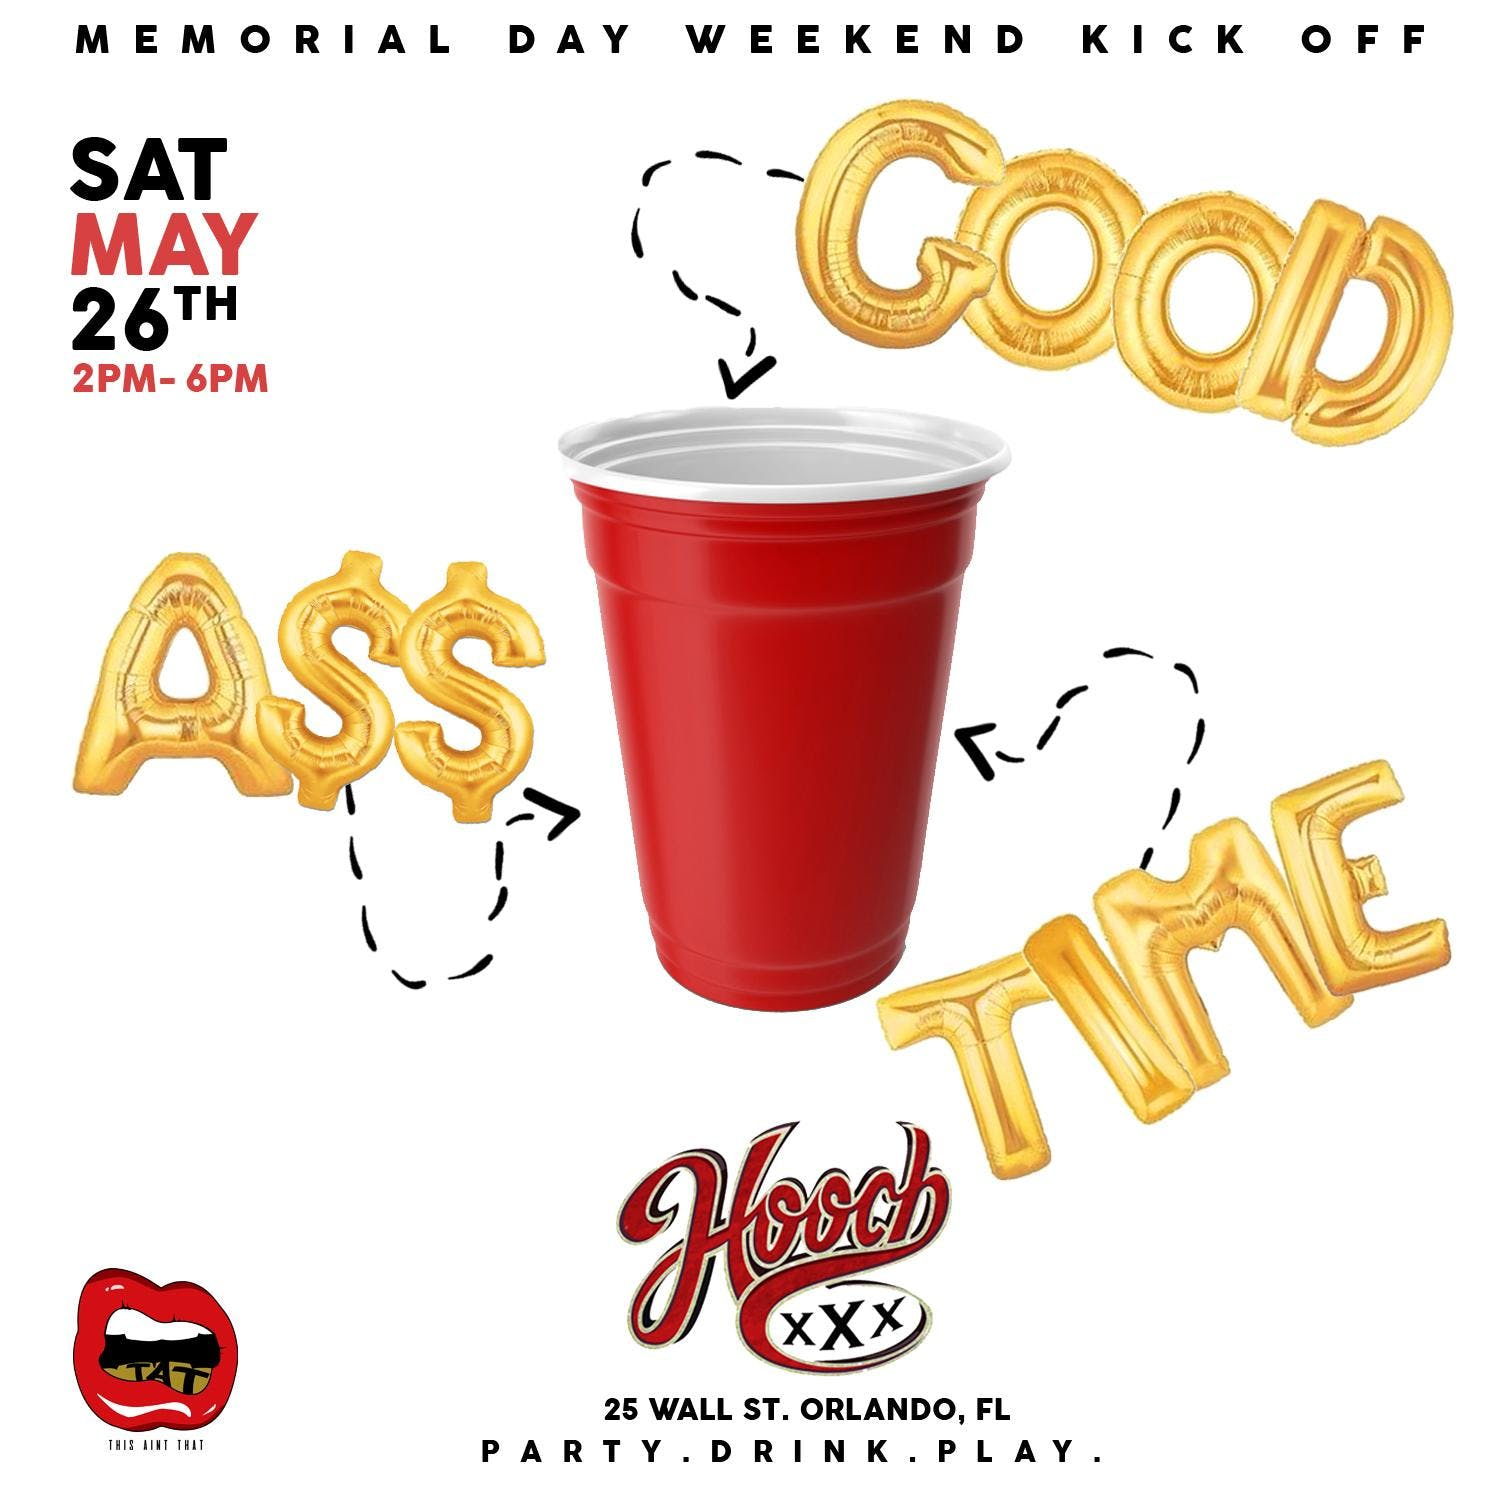 Good A$$ Time - The Day Party Vibe. Hooch, Orlando